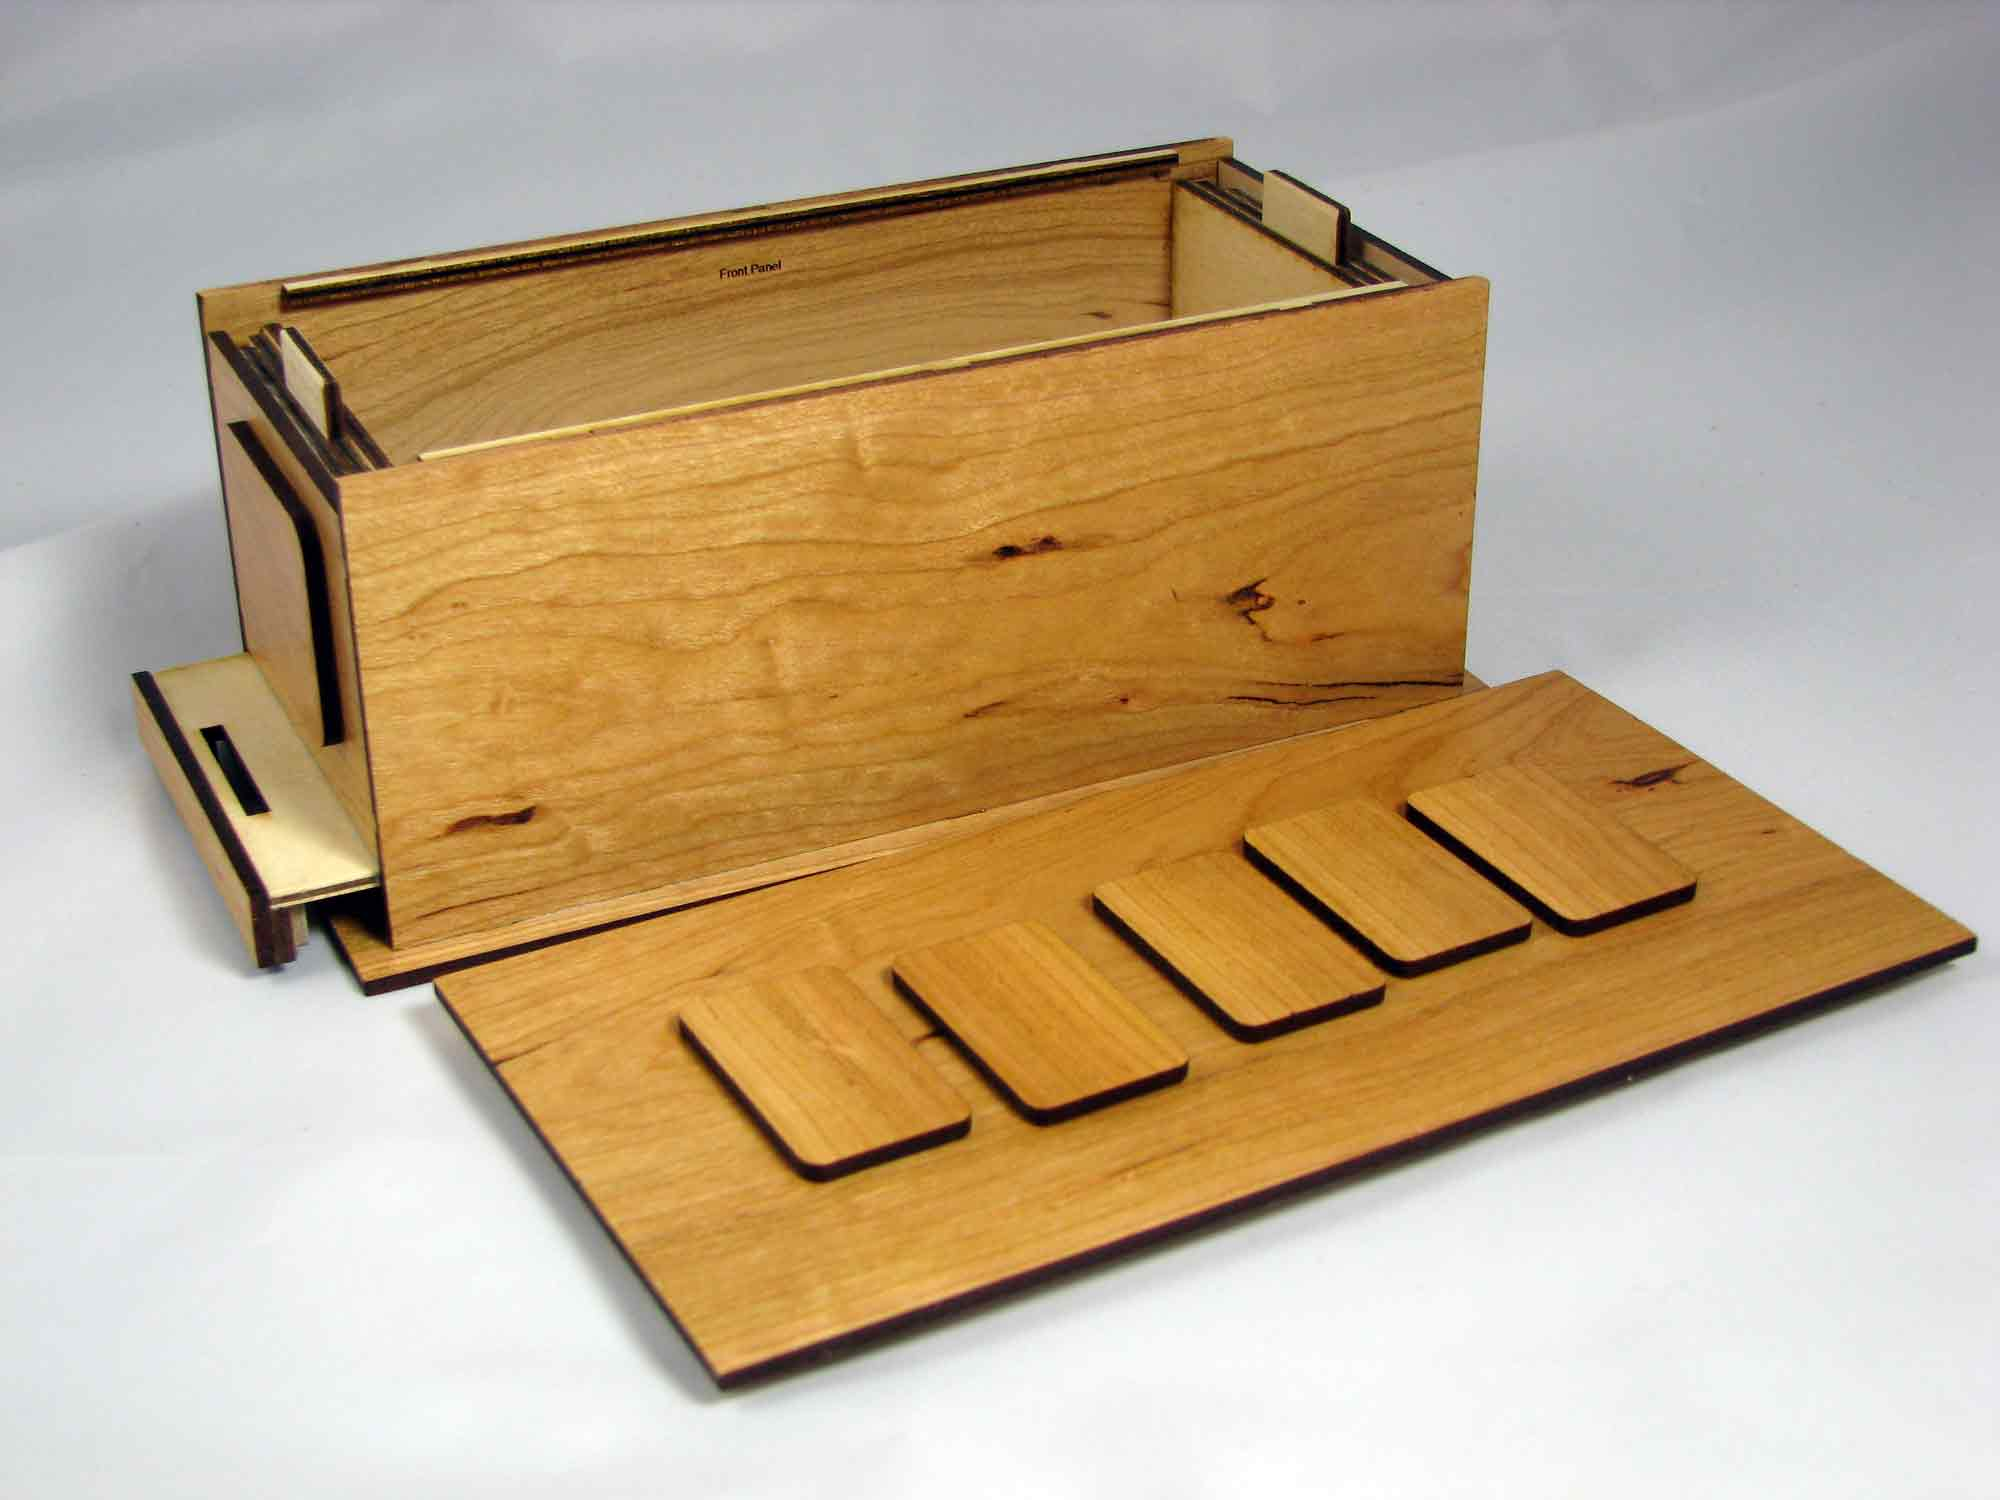 Woodworking puzzle box plans PDF Free Download